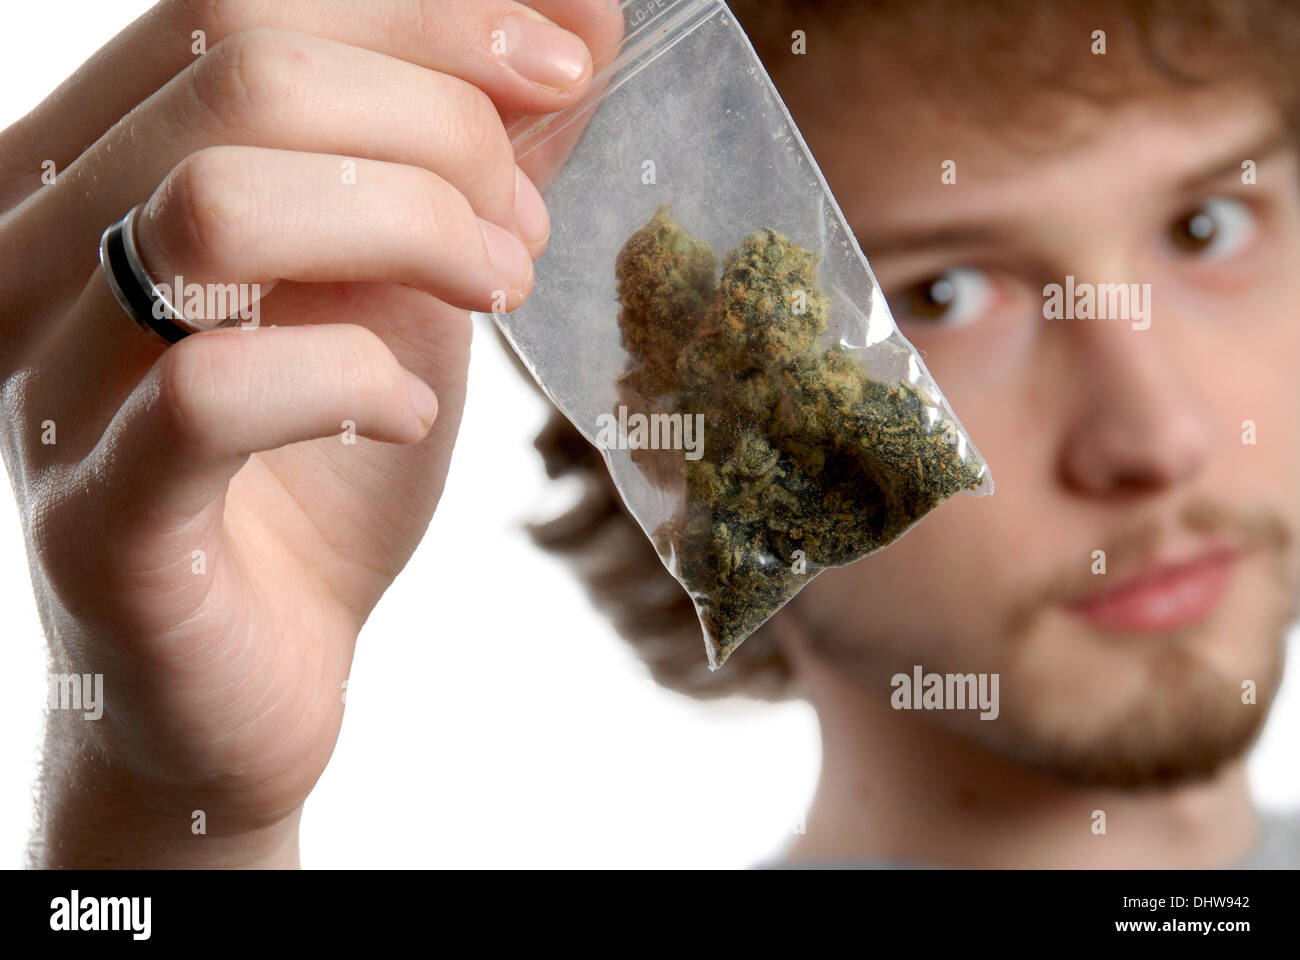 SUBSTANCE ABUSE, CANNABIS - Stock Image